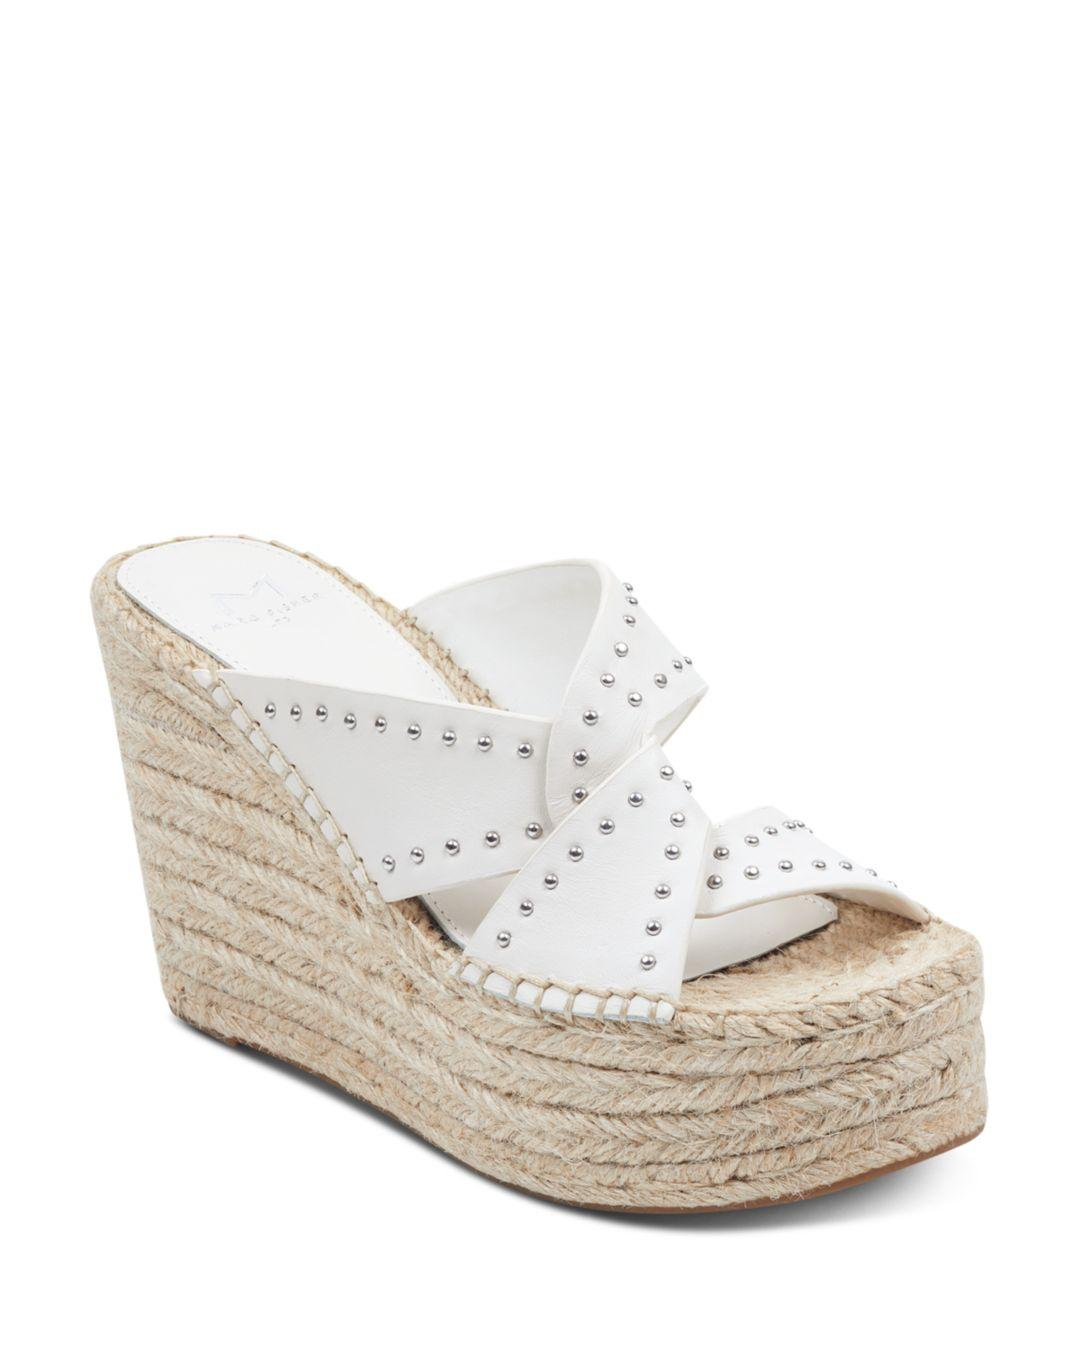 9555665f2f4 Lyst - Marc Fisher Angelina Wedge Sandals in White - Save 26%